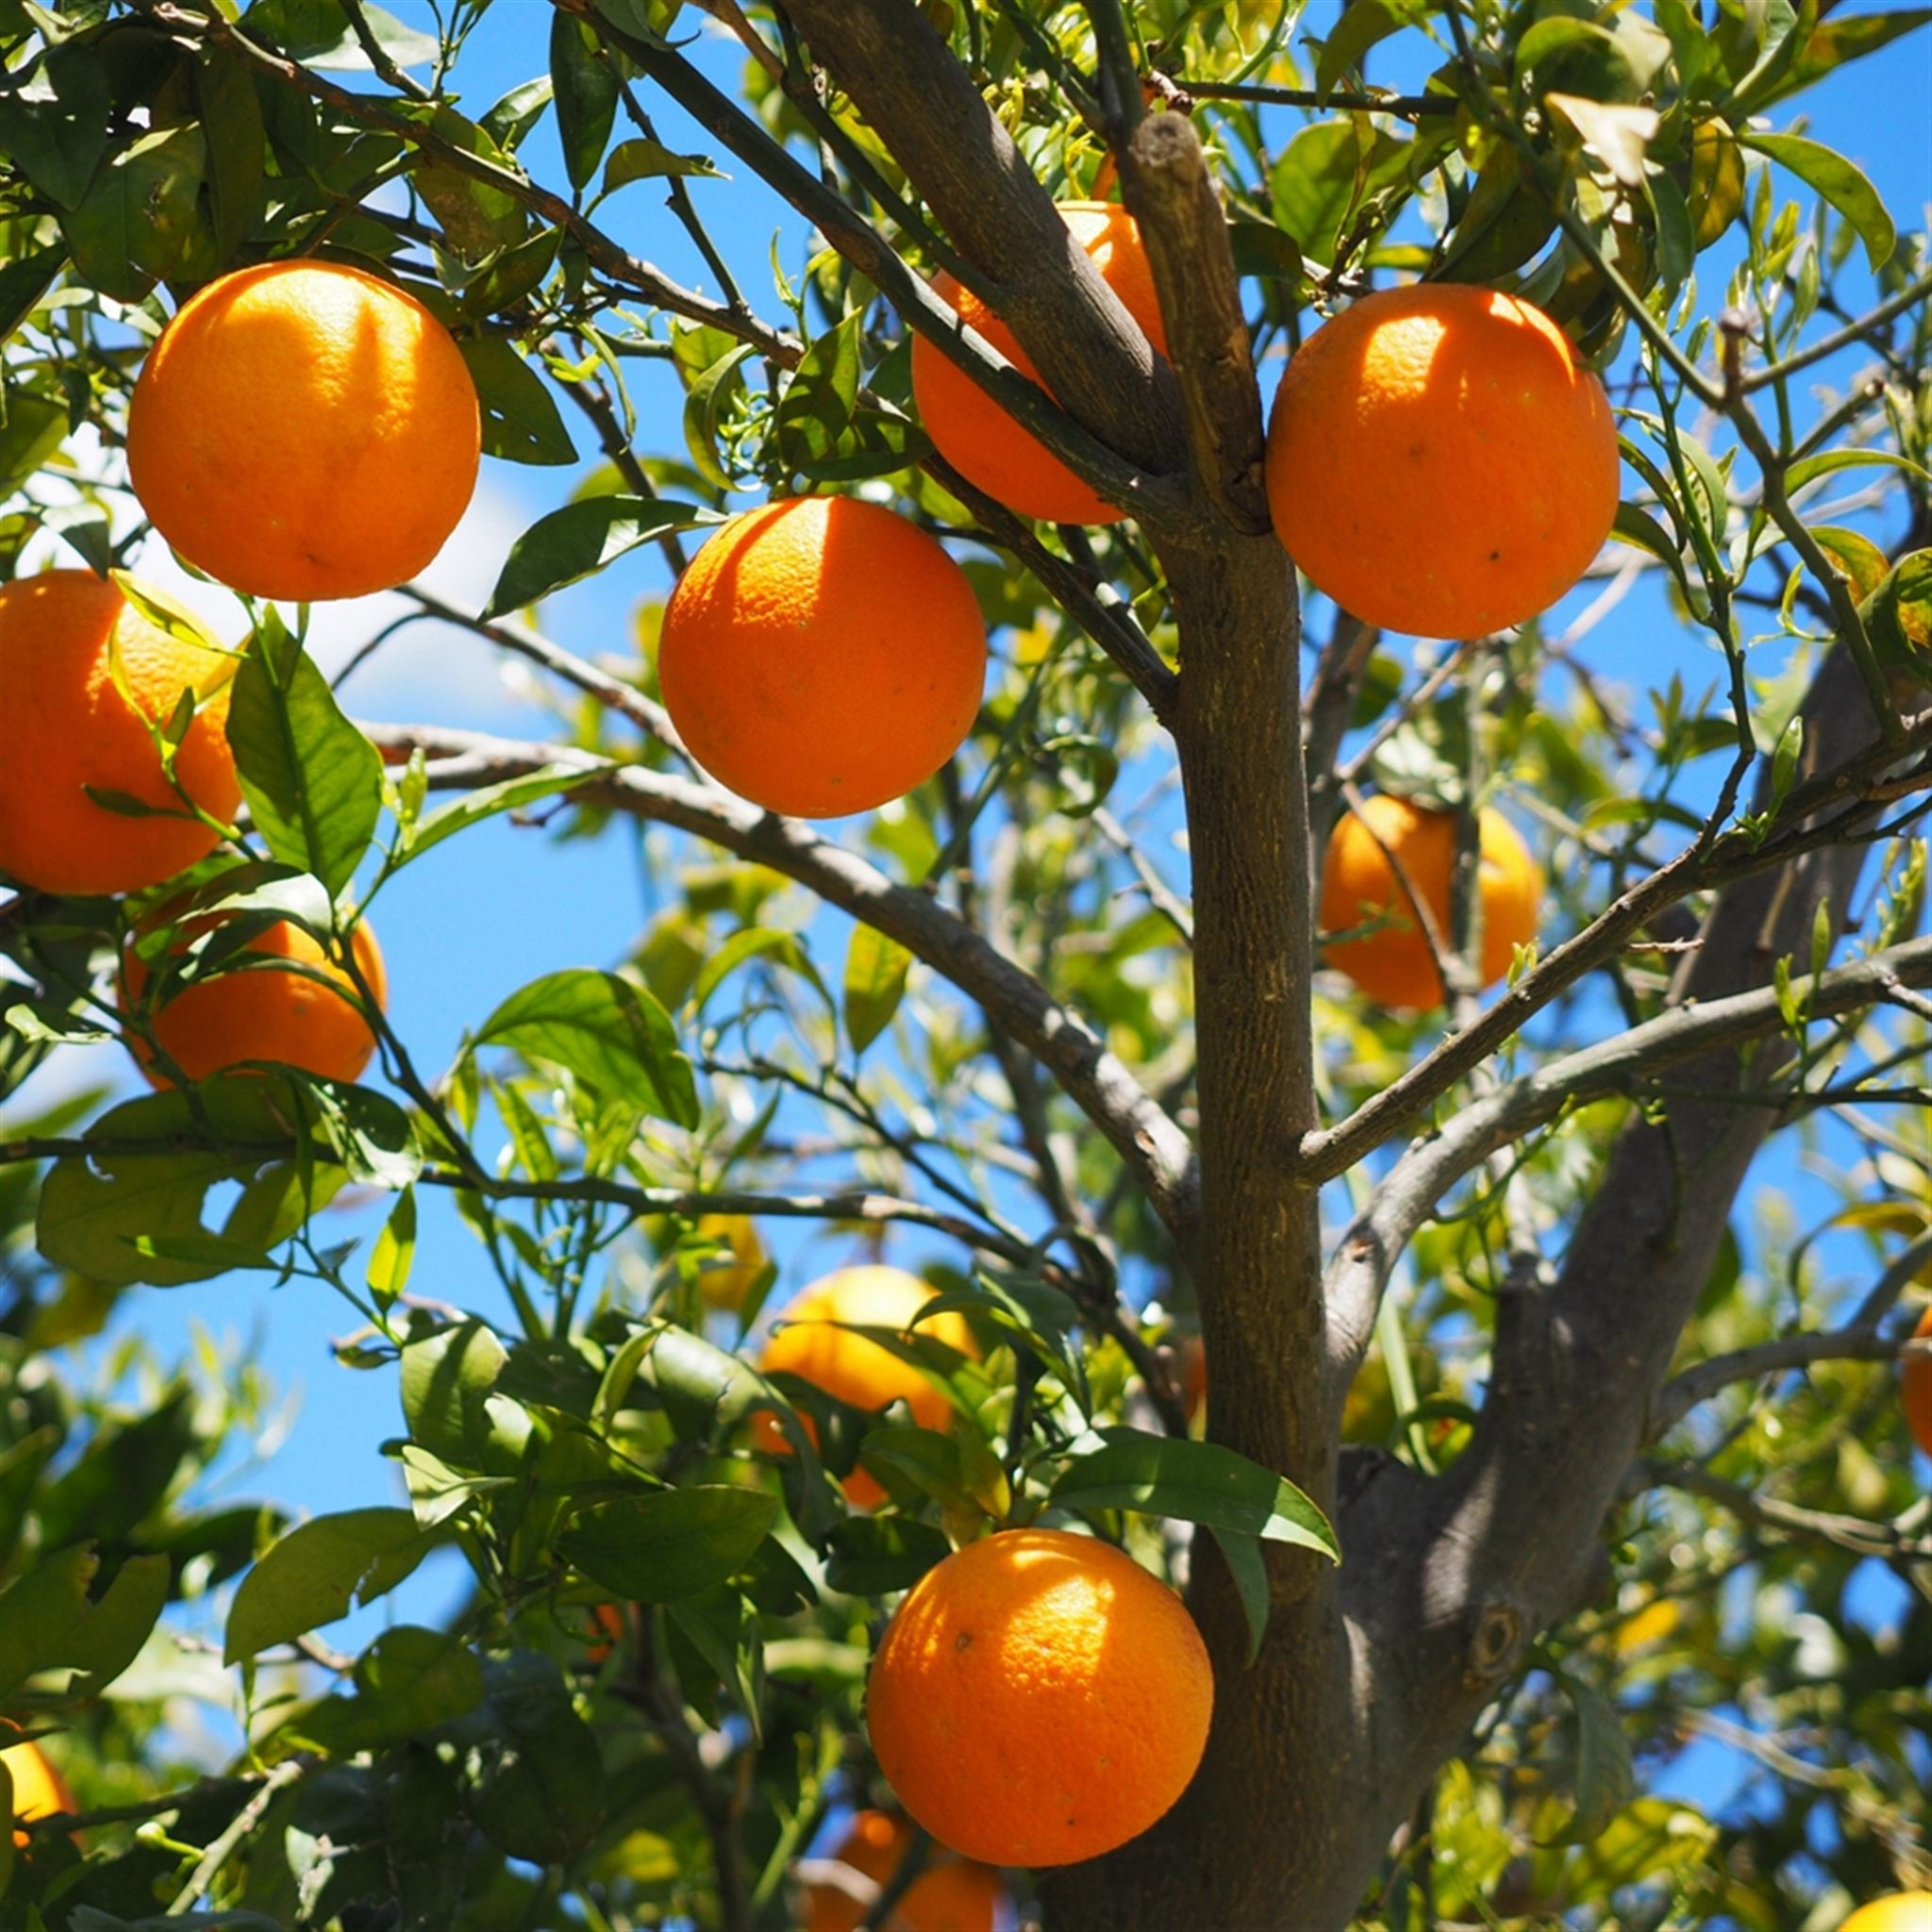 Oranges Fruit Orange Tree Citrus iPad wallpaper